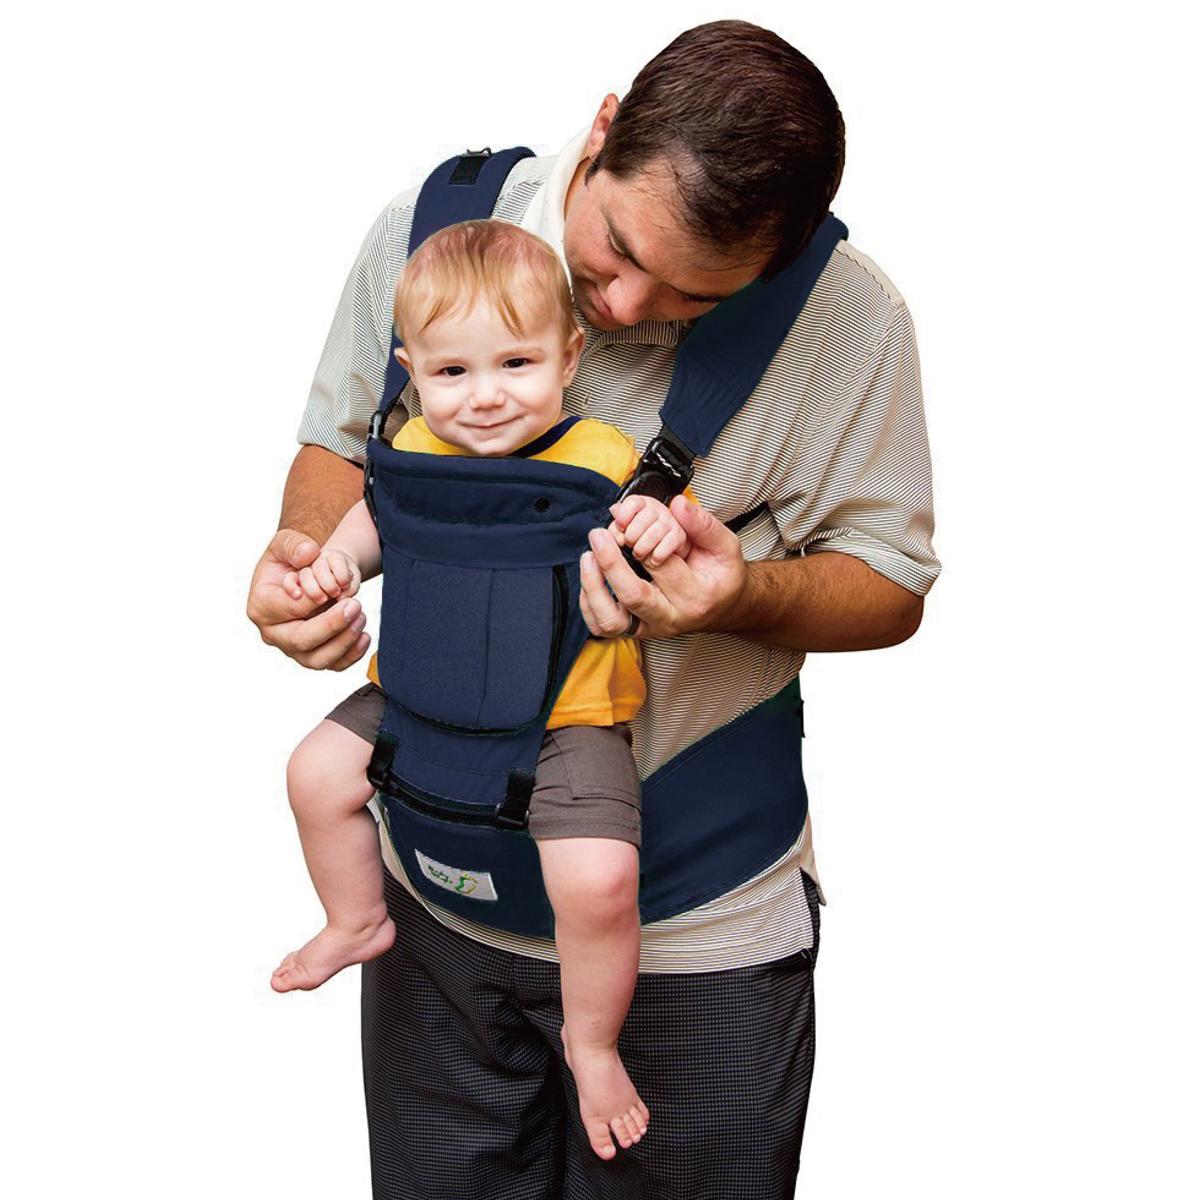 BabySteps Ergonomic Baby Carrier with Hip Seat for All Seasons, 6 Comfortable & Safe Positions for Infant &... by BabySteps